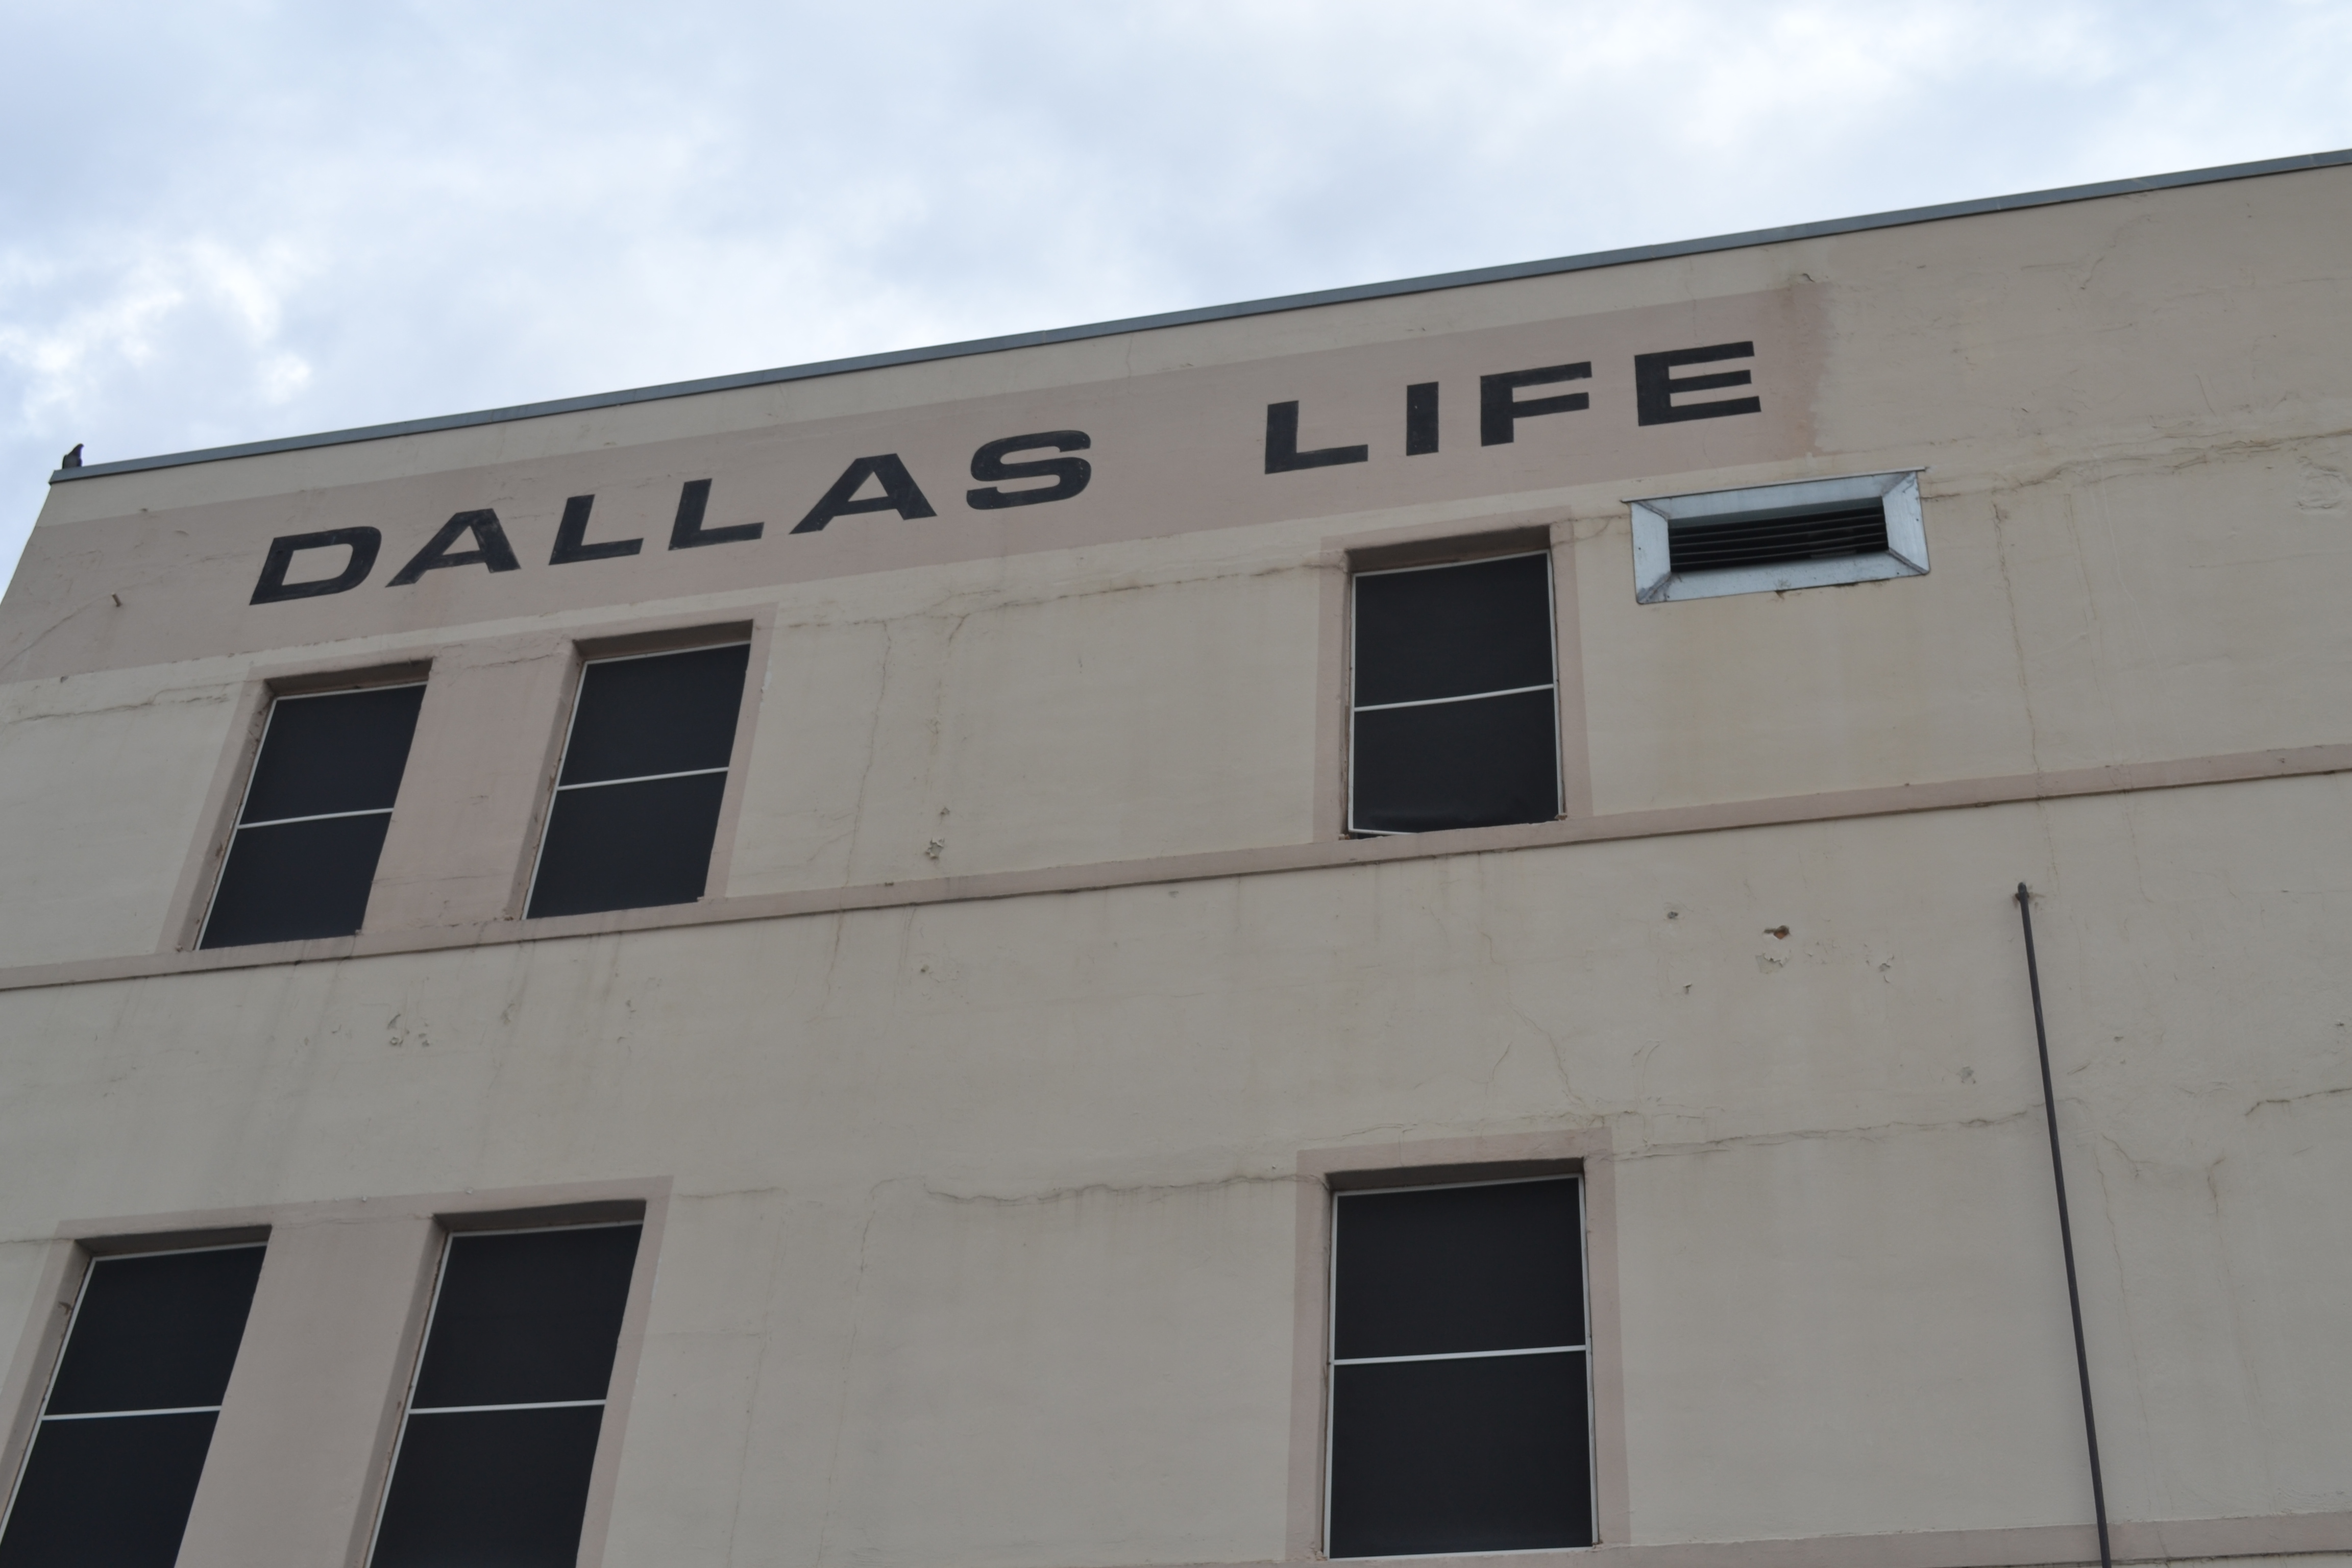 Dallas Tx Homeless Shelters Halfway Houses